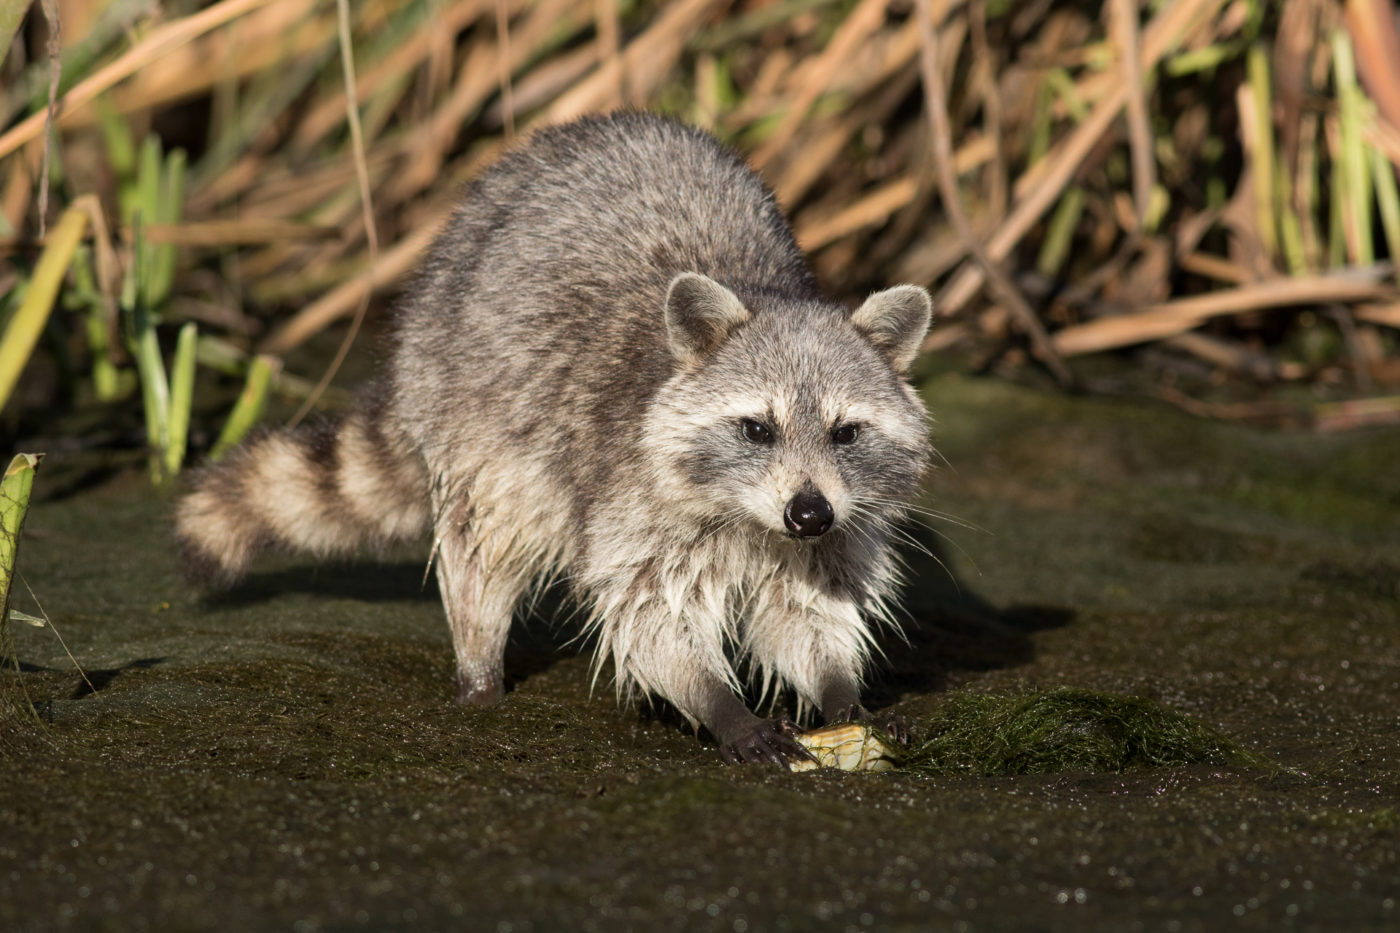 Raccoon eating a crab